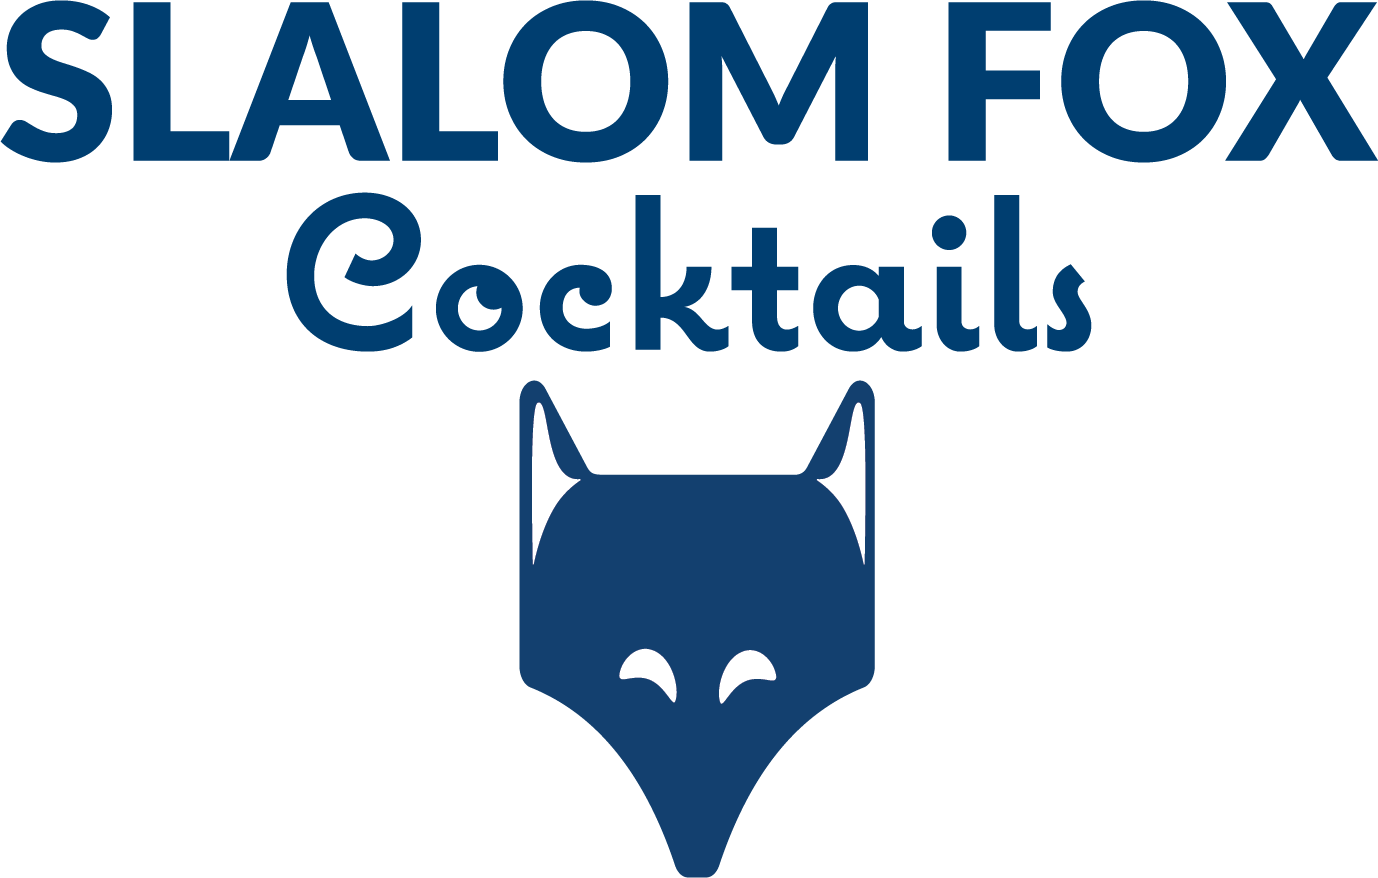 Slalom Fox Cocktails